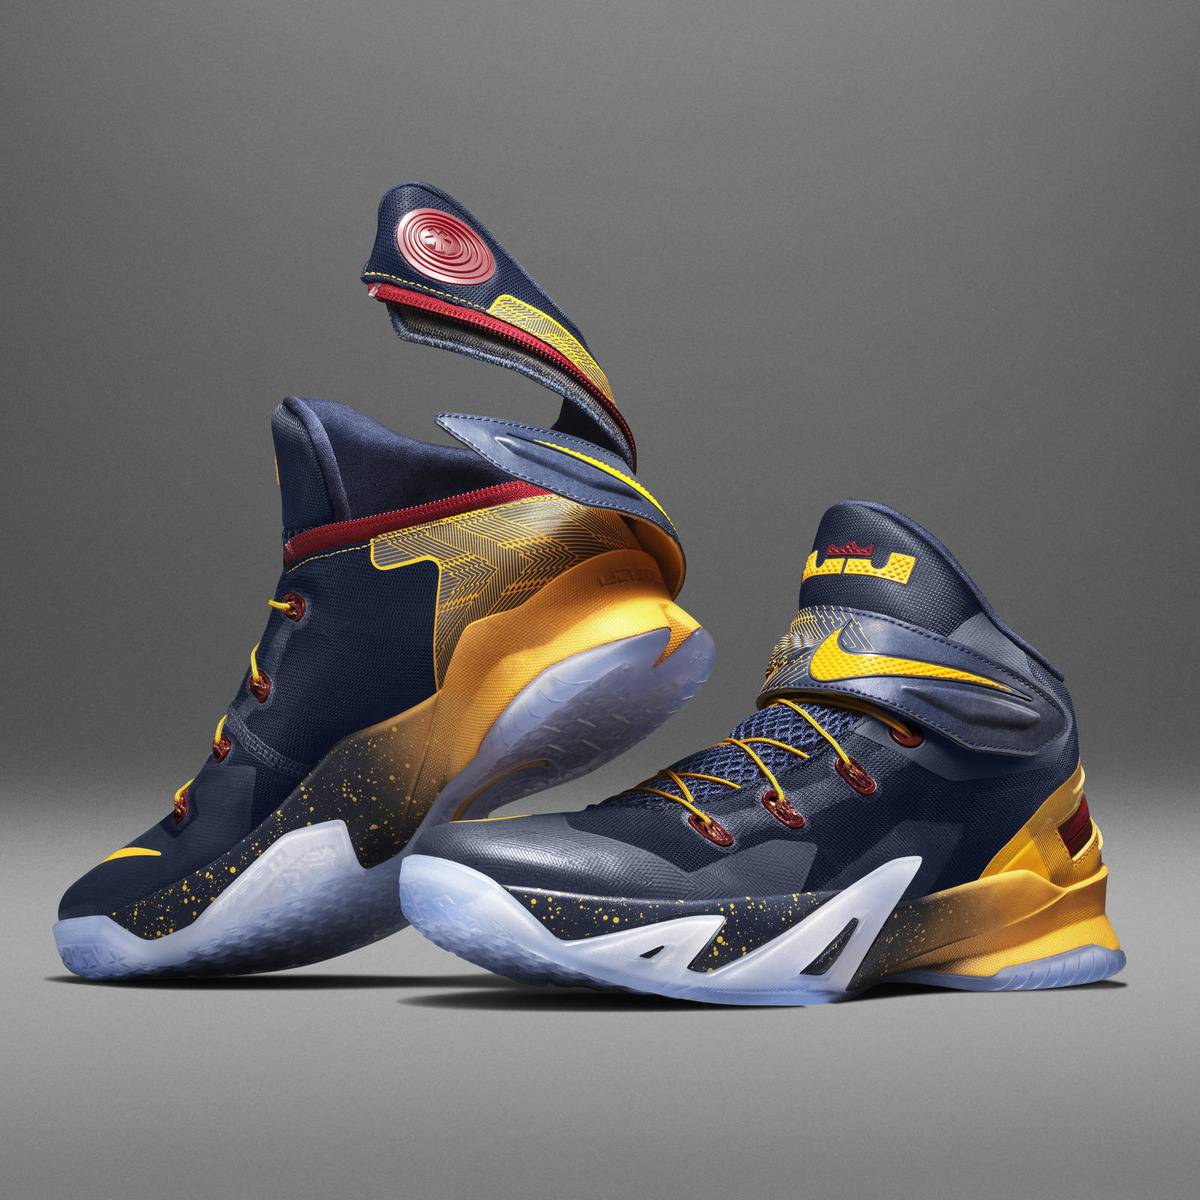 Here's what the Nike Flyease shoe looks like. Those interested can buy a pair from Nike.com on Thursday.